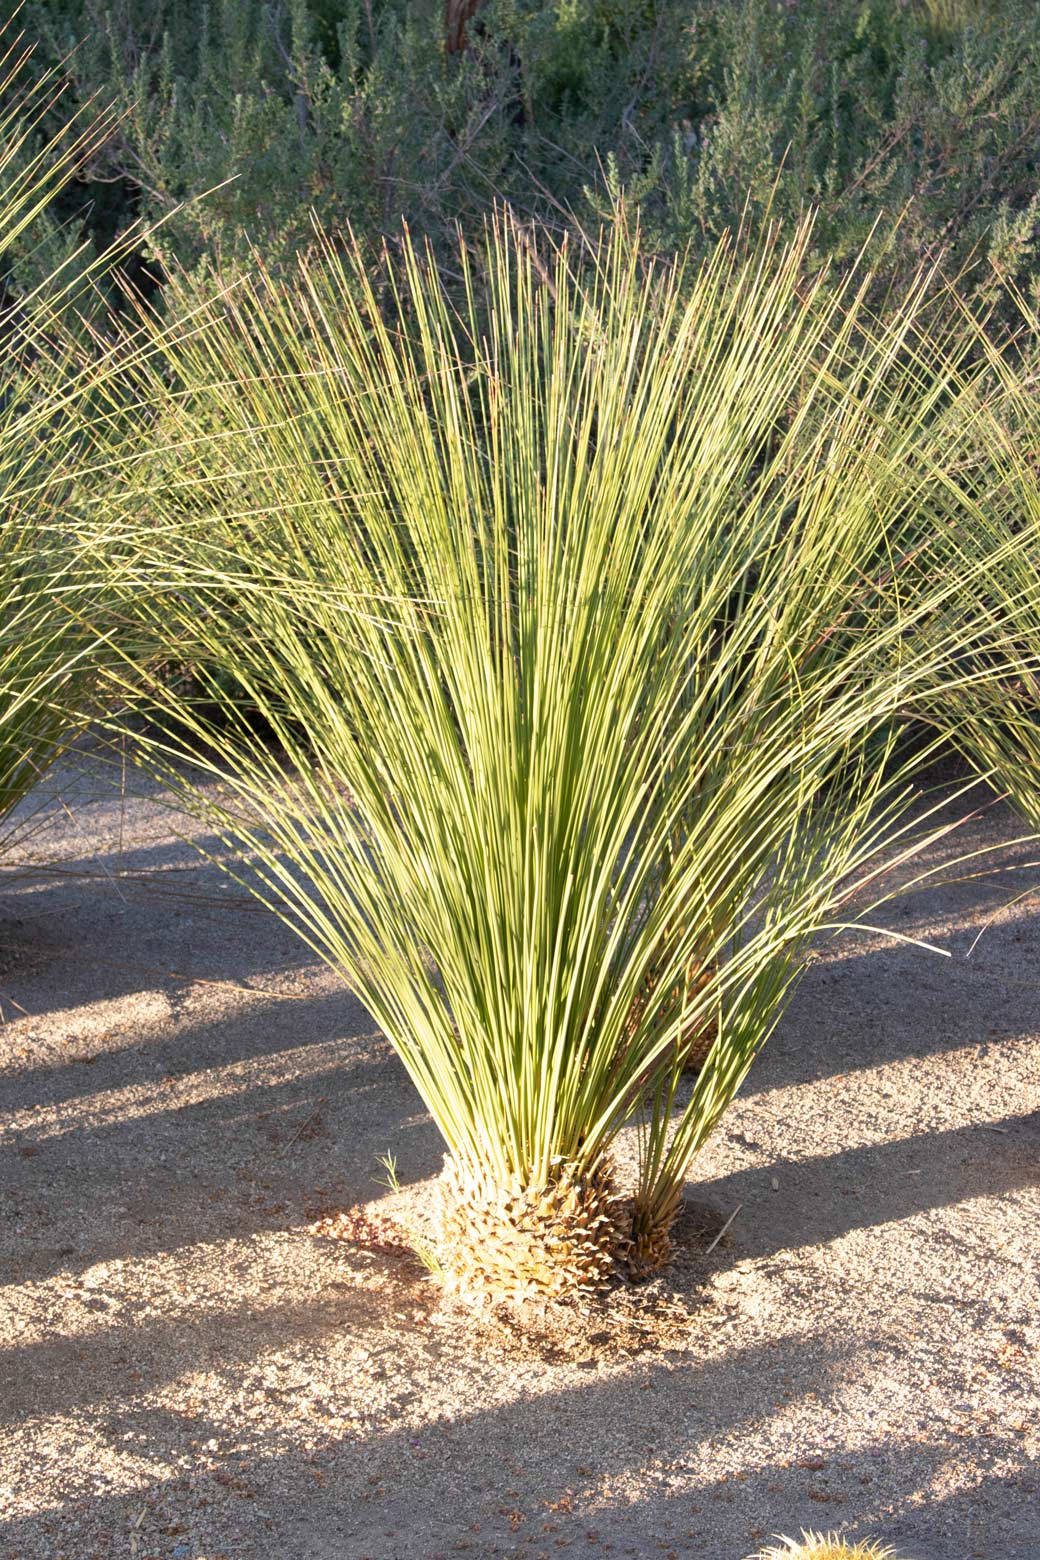 A single Mexican Grass Tree specimen.